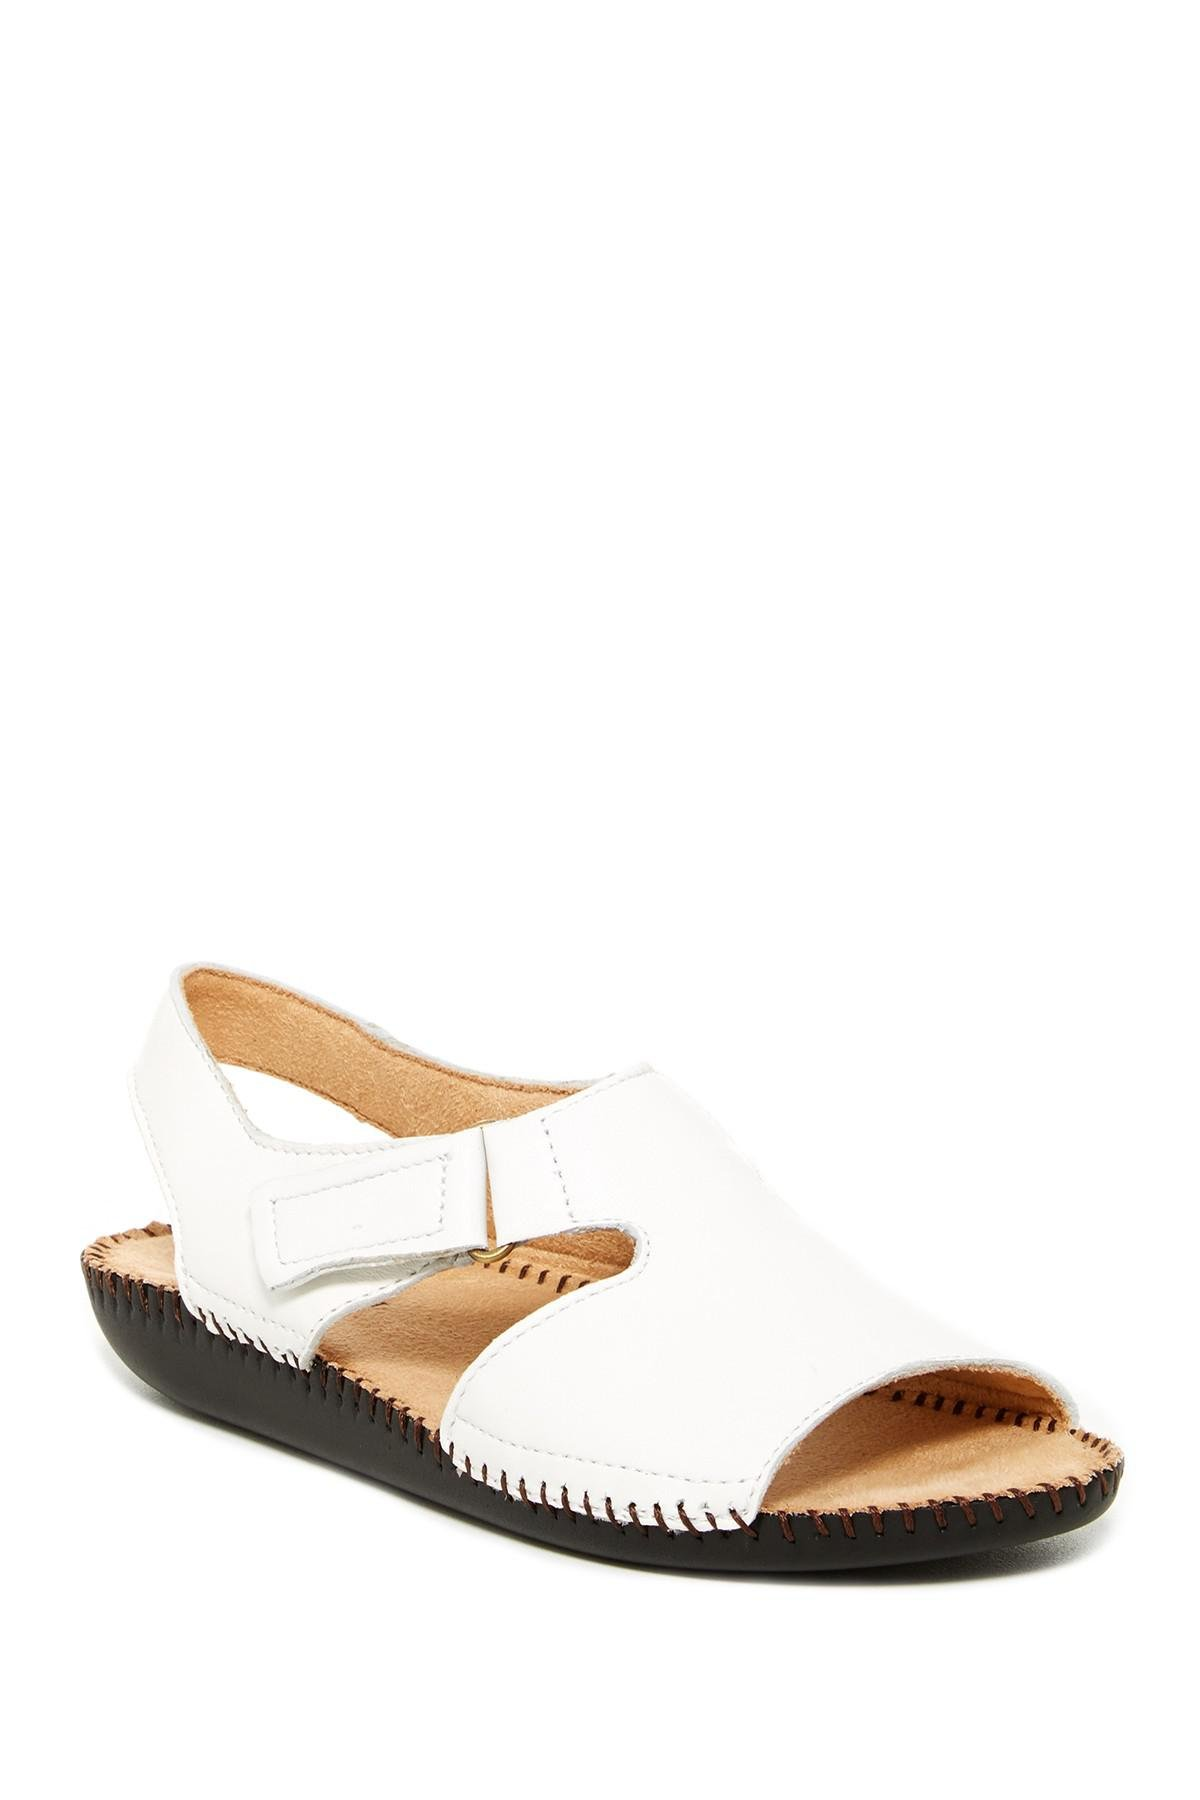 2ff844a0f9d8 Lyst - Naturalizer Scout Sandal in White